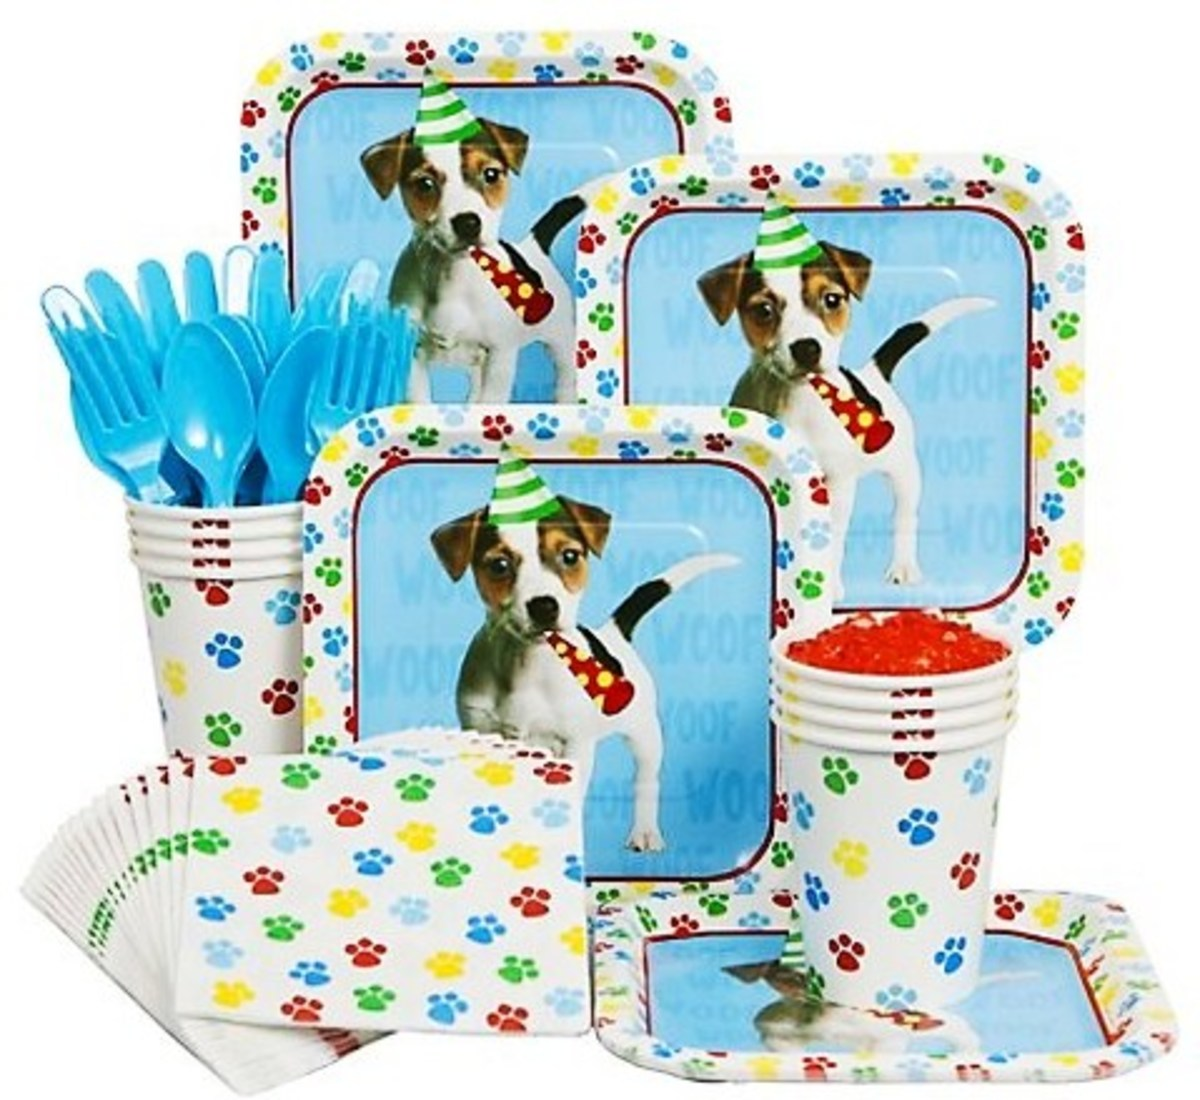 These puppy dog party supplies were released after my daughter's party and are just as cute! This would be another great partyware option for your celebration.